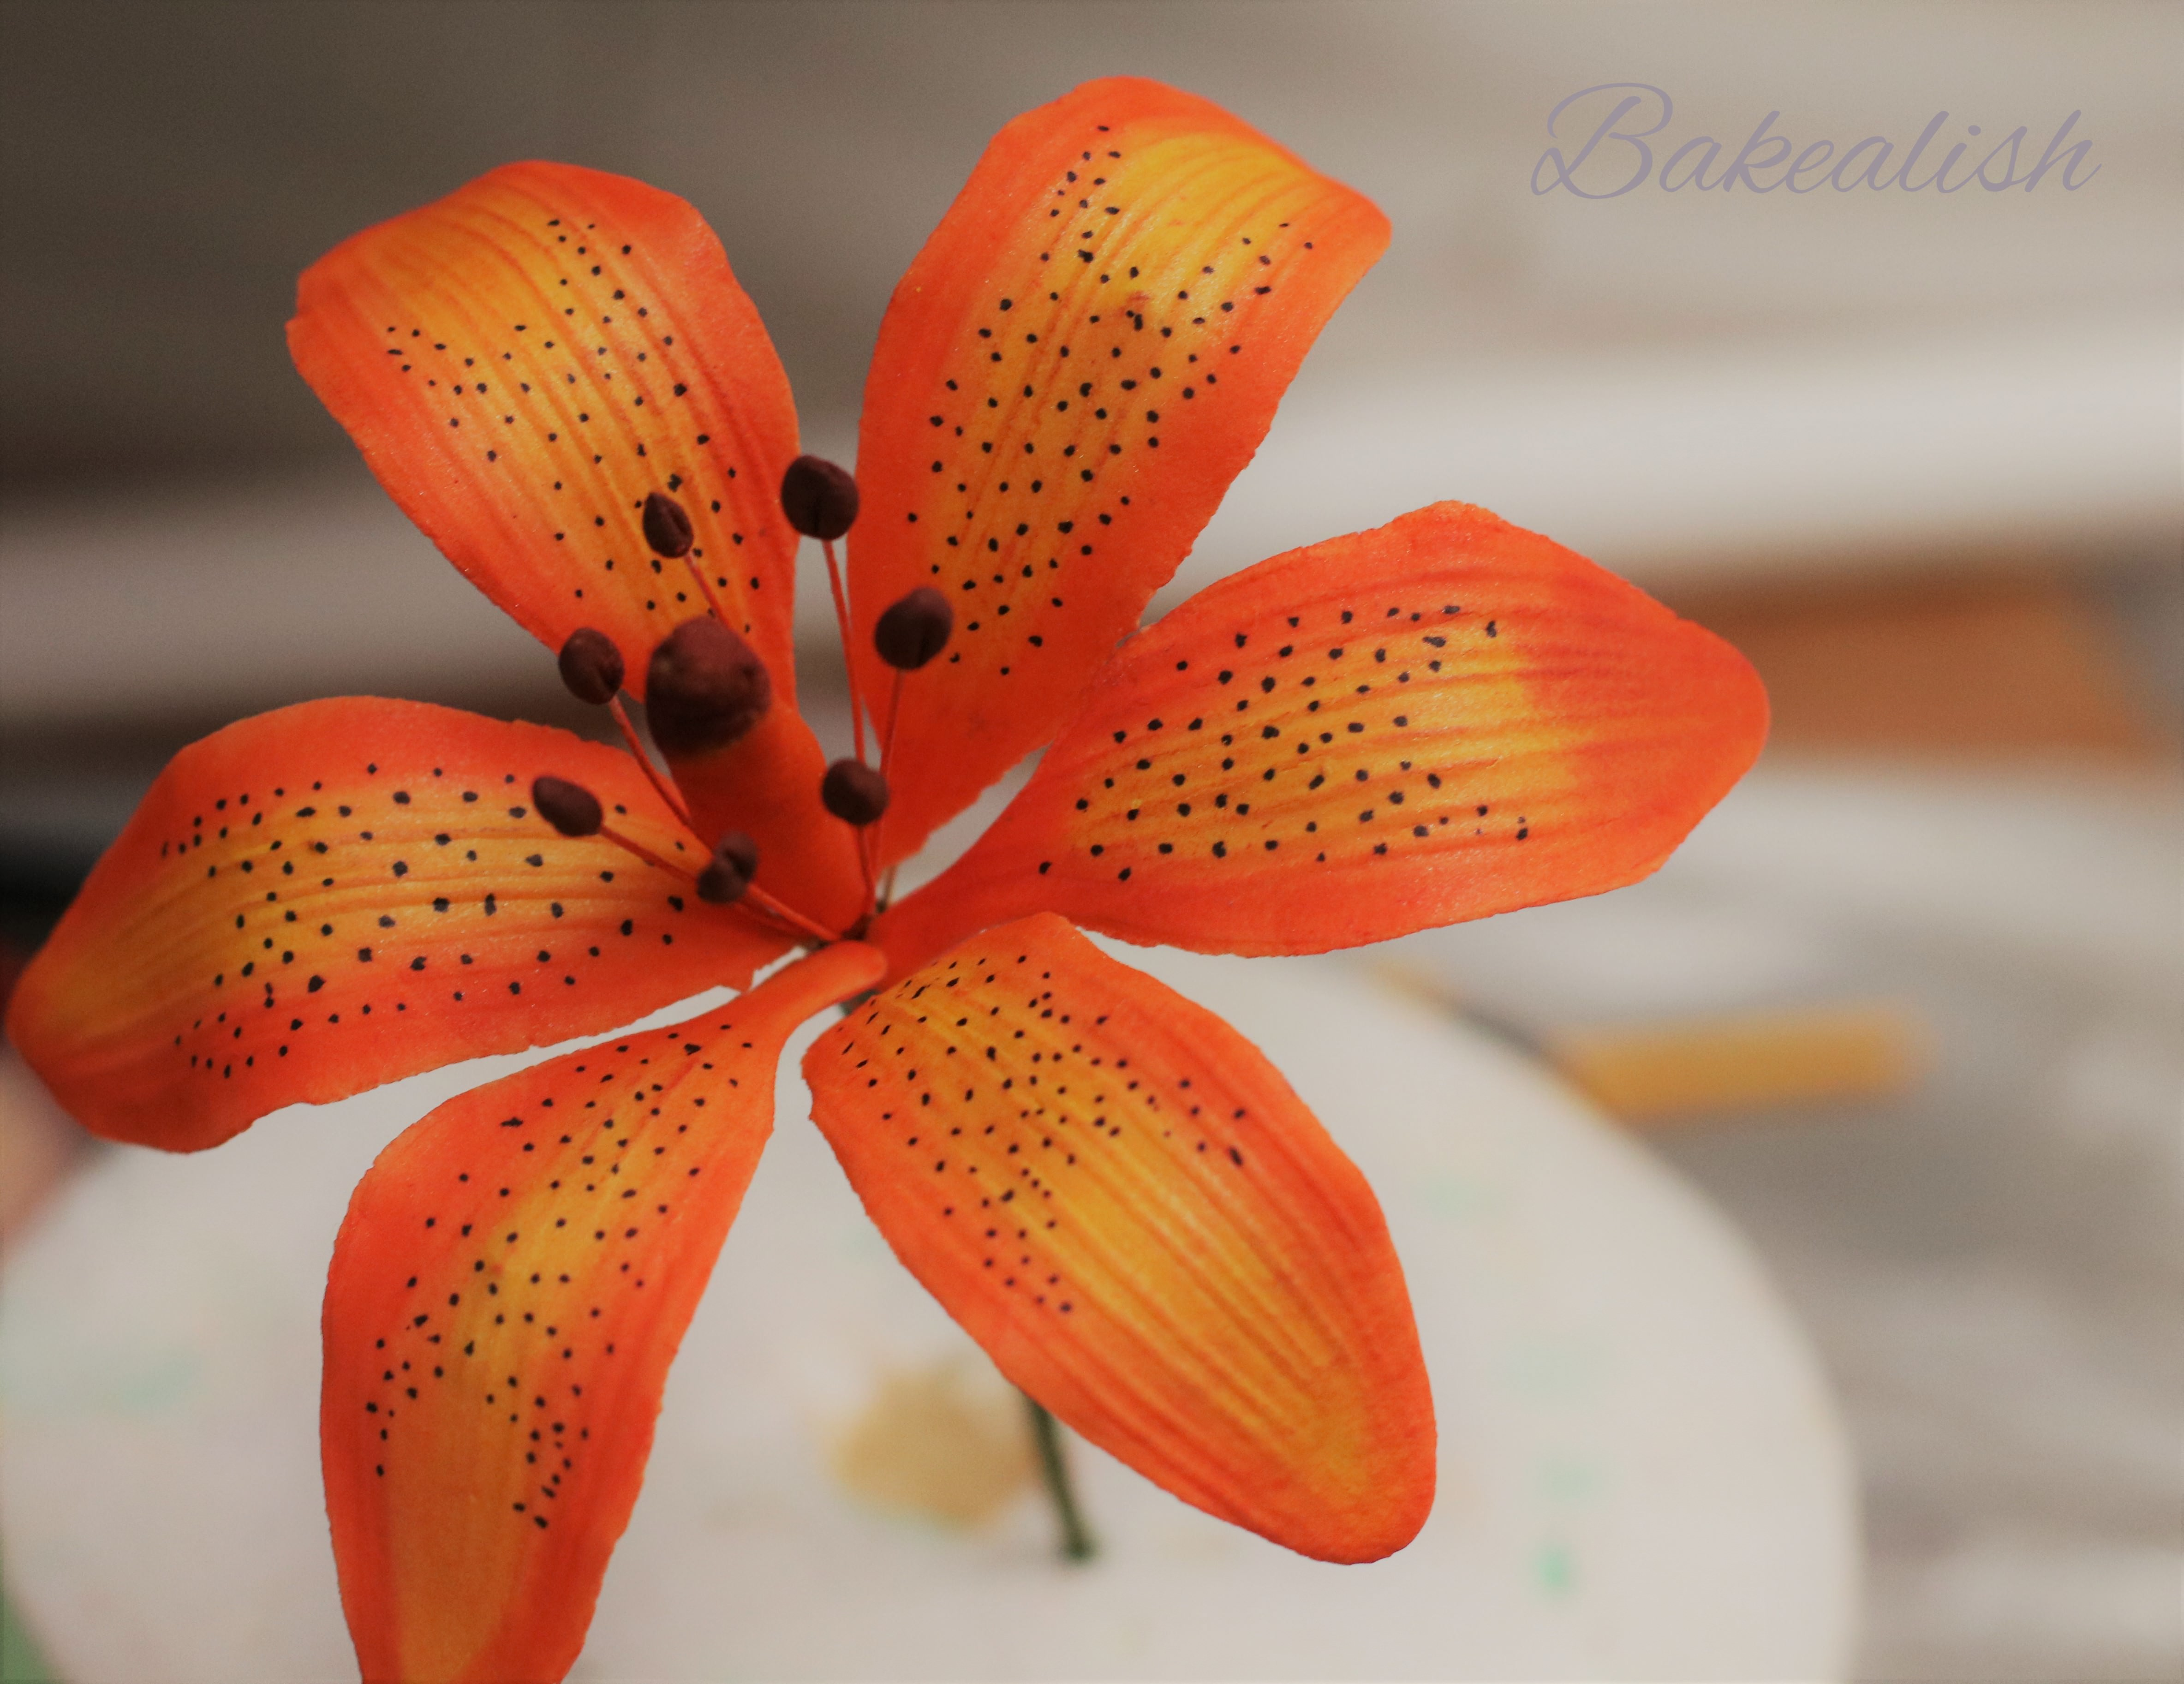 Learn how to create some breathtaking realistic looking sugar flowers with us at Bakealish in this Workshop on Exotic Sugar Flowers